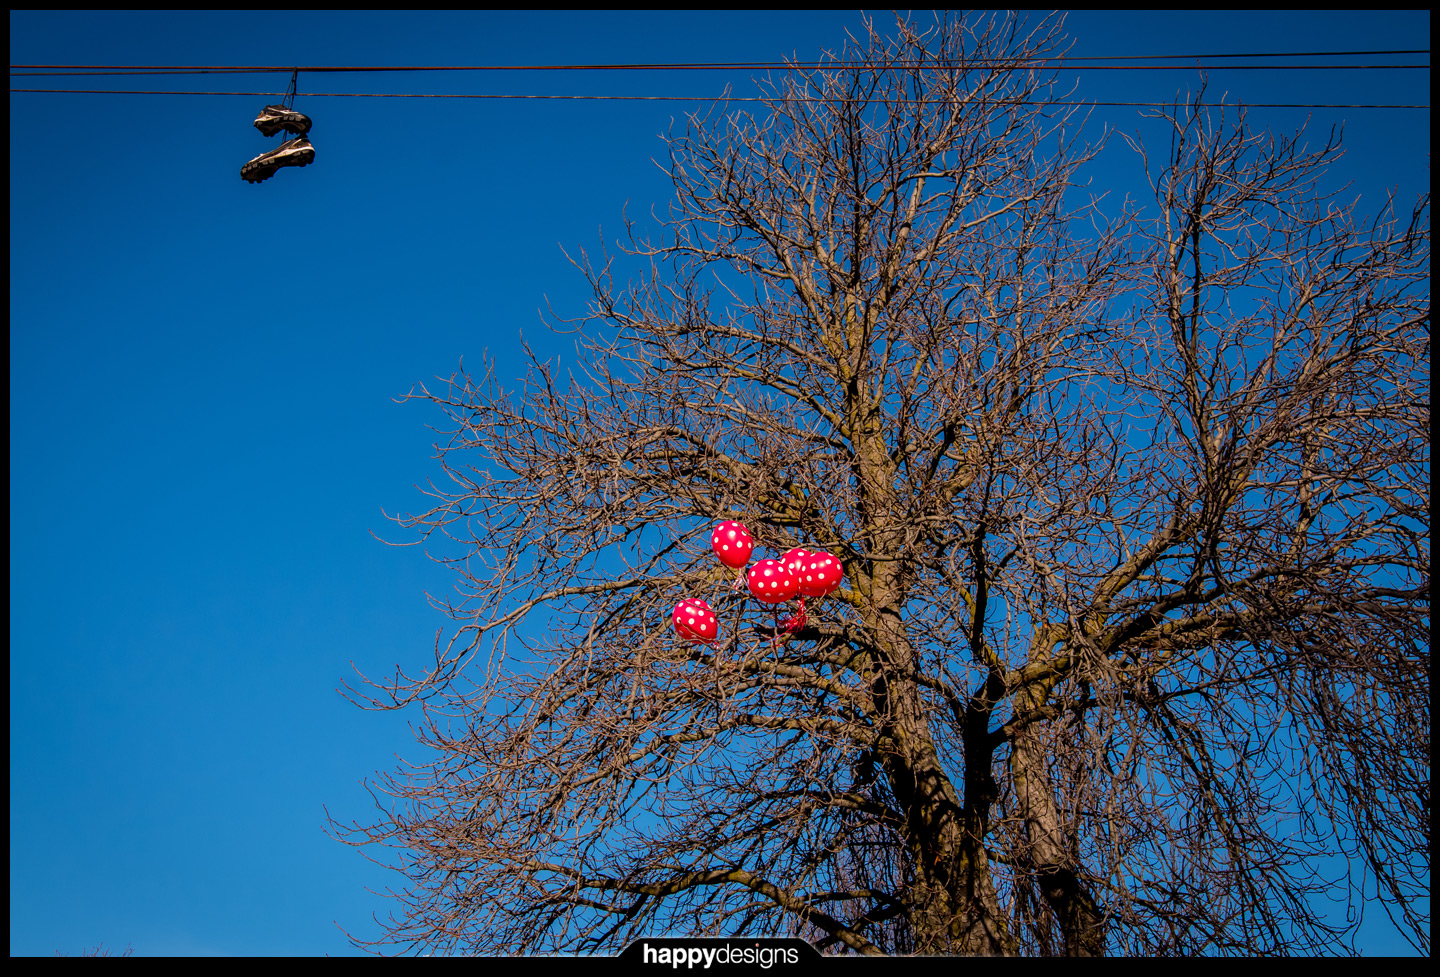 20150106 - balloons in a tree-0001